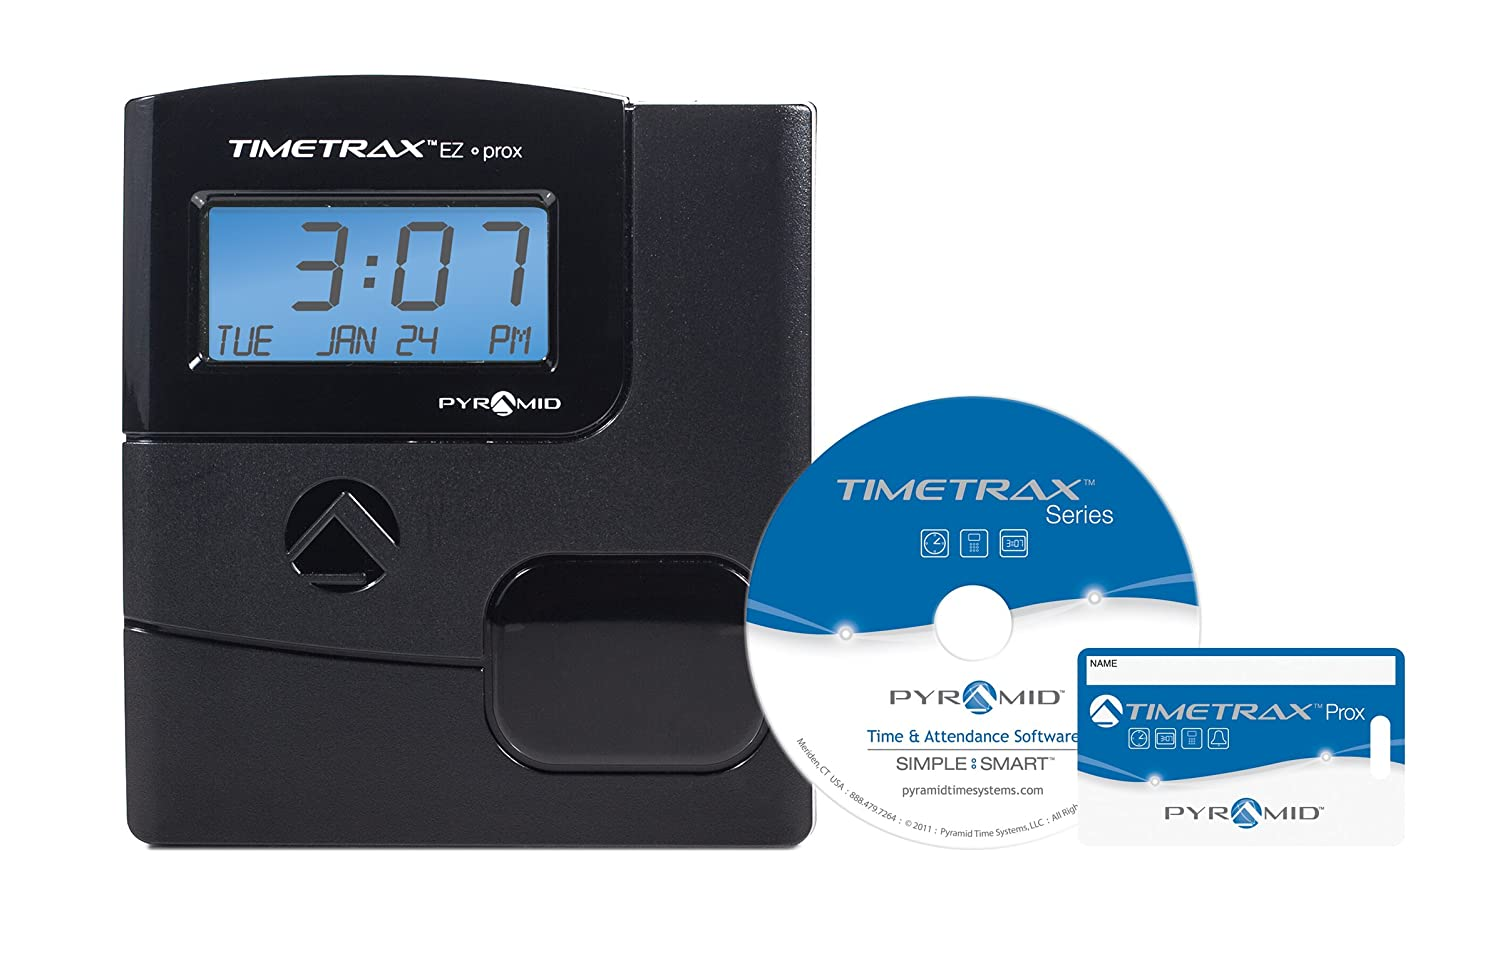 Pyramid TimeTrax TTEZEK Automated Swipe Card Time Clock System with Software - Made in USA Pyramid Time Systems